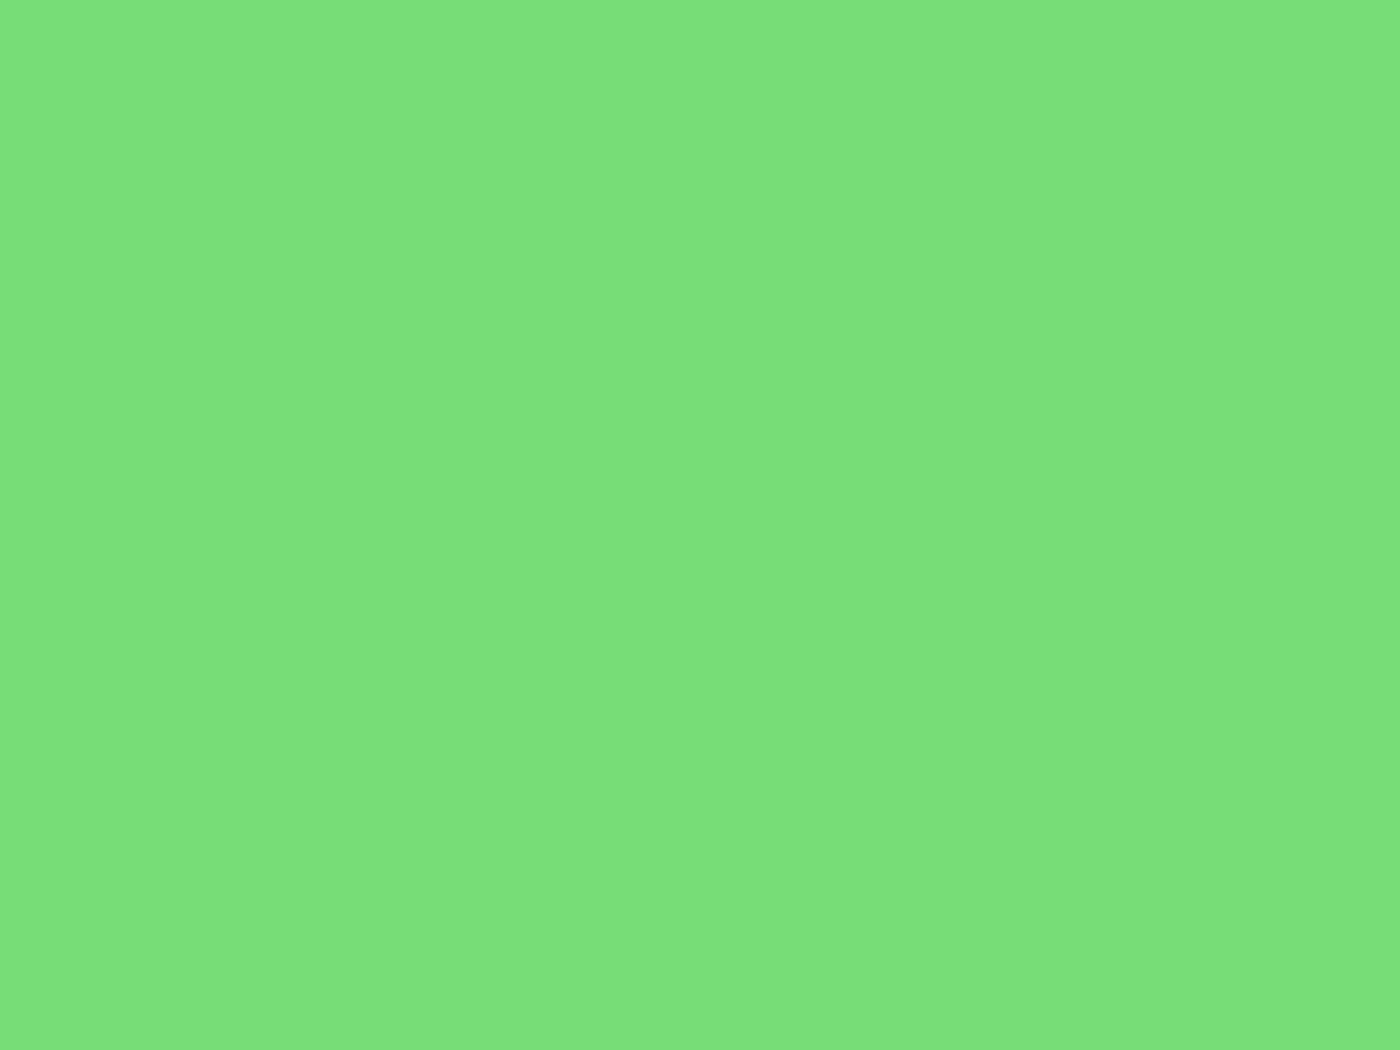 1400x1050 Pastel Green Solid Color Background